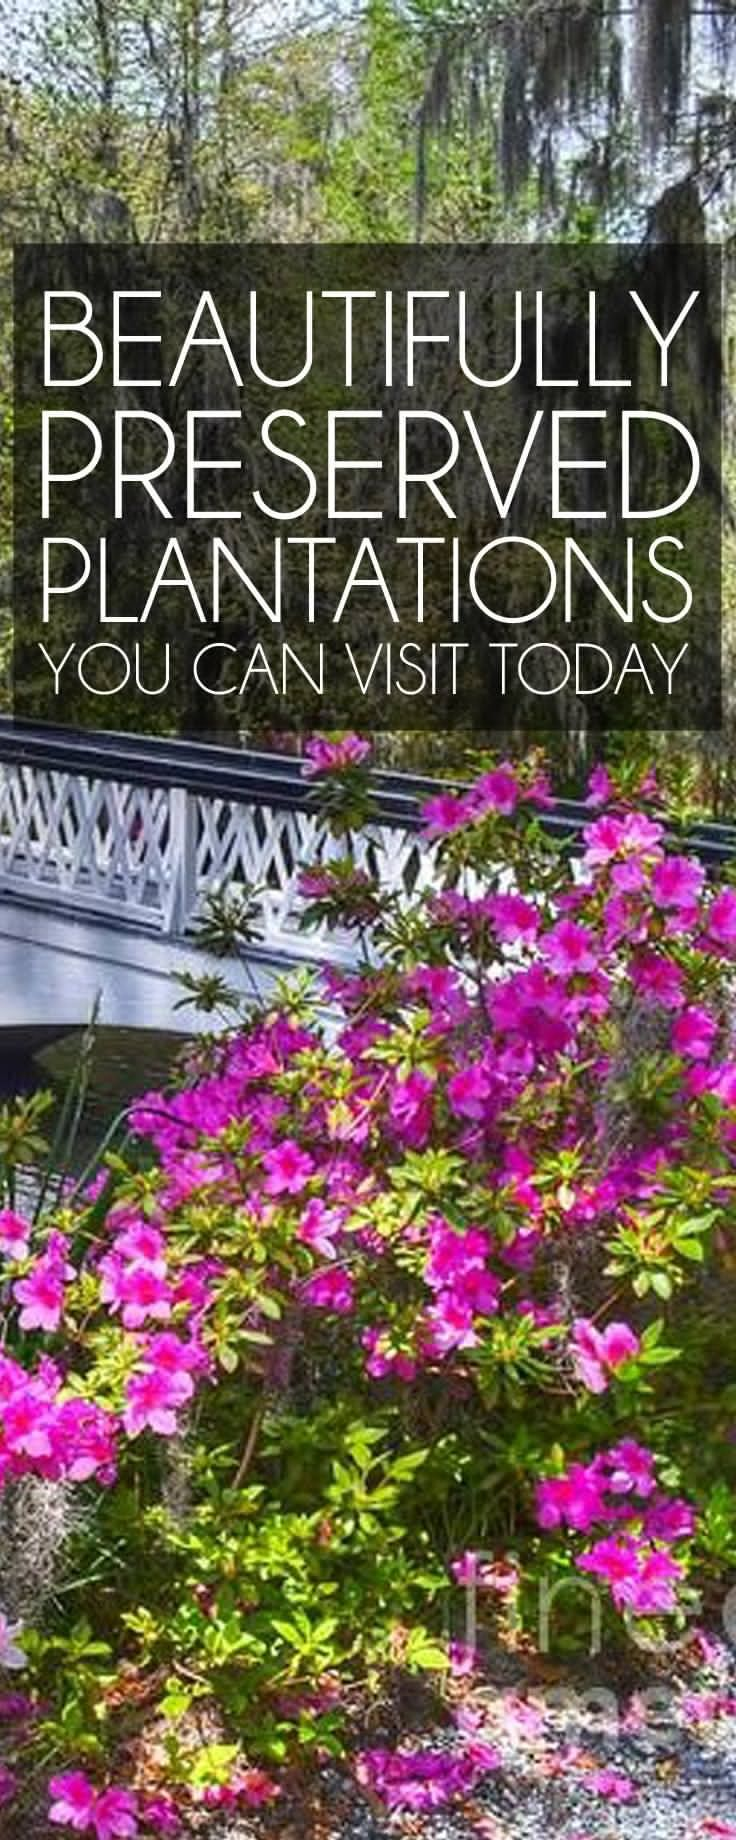 Pin on Perfectly Preserved Plantations